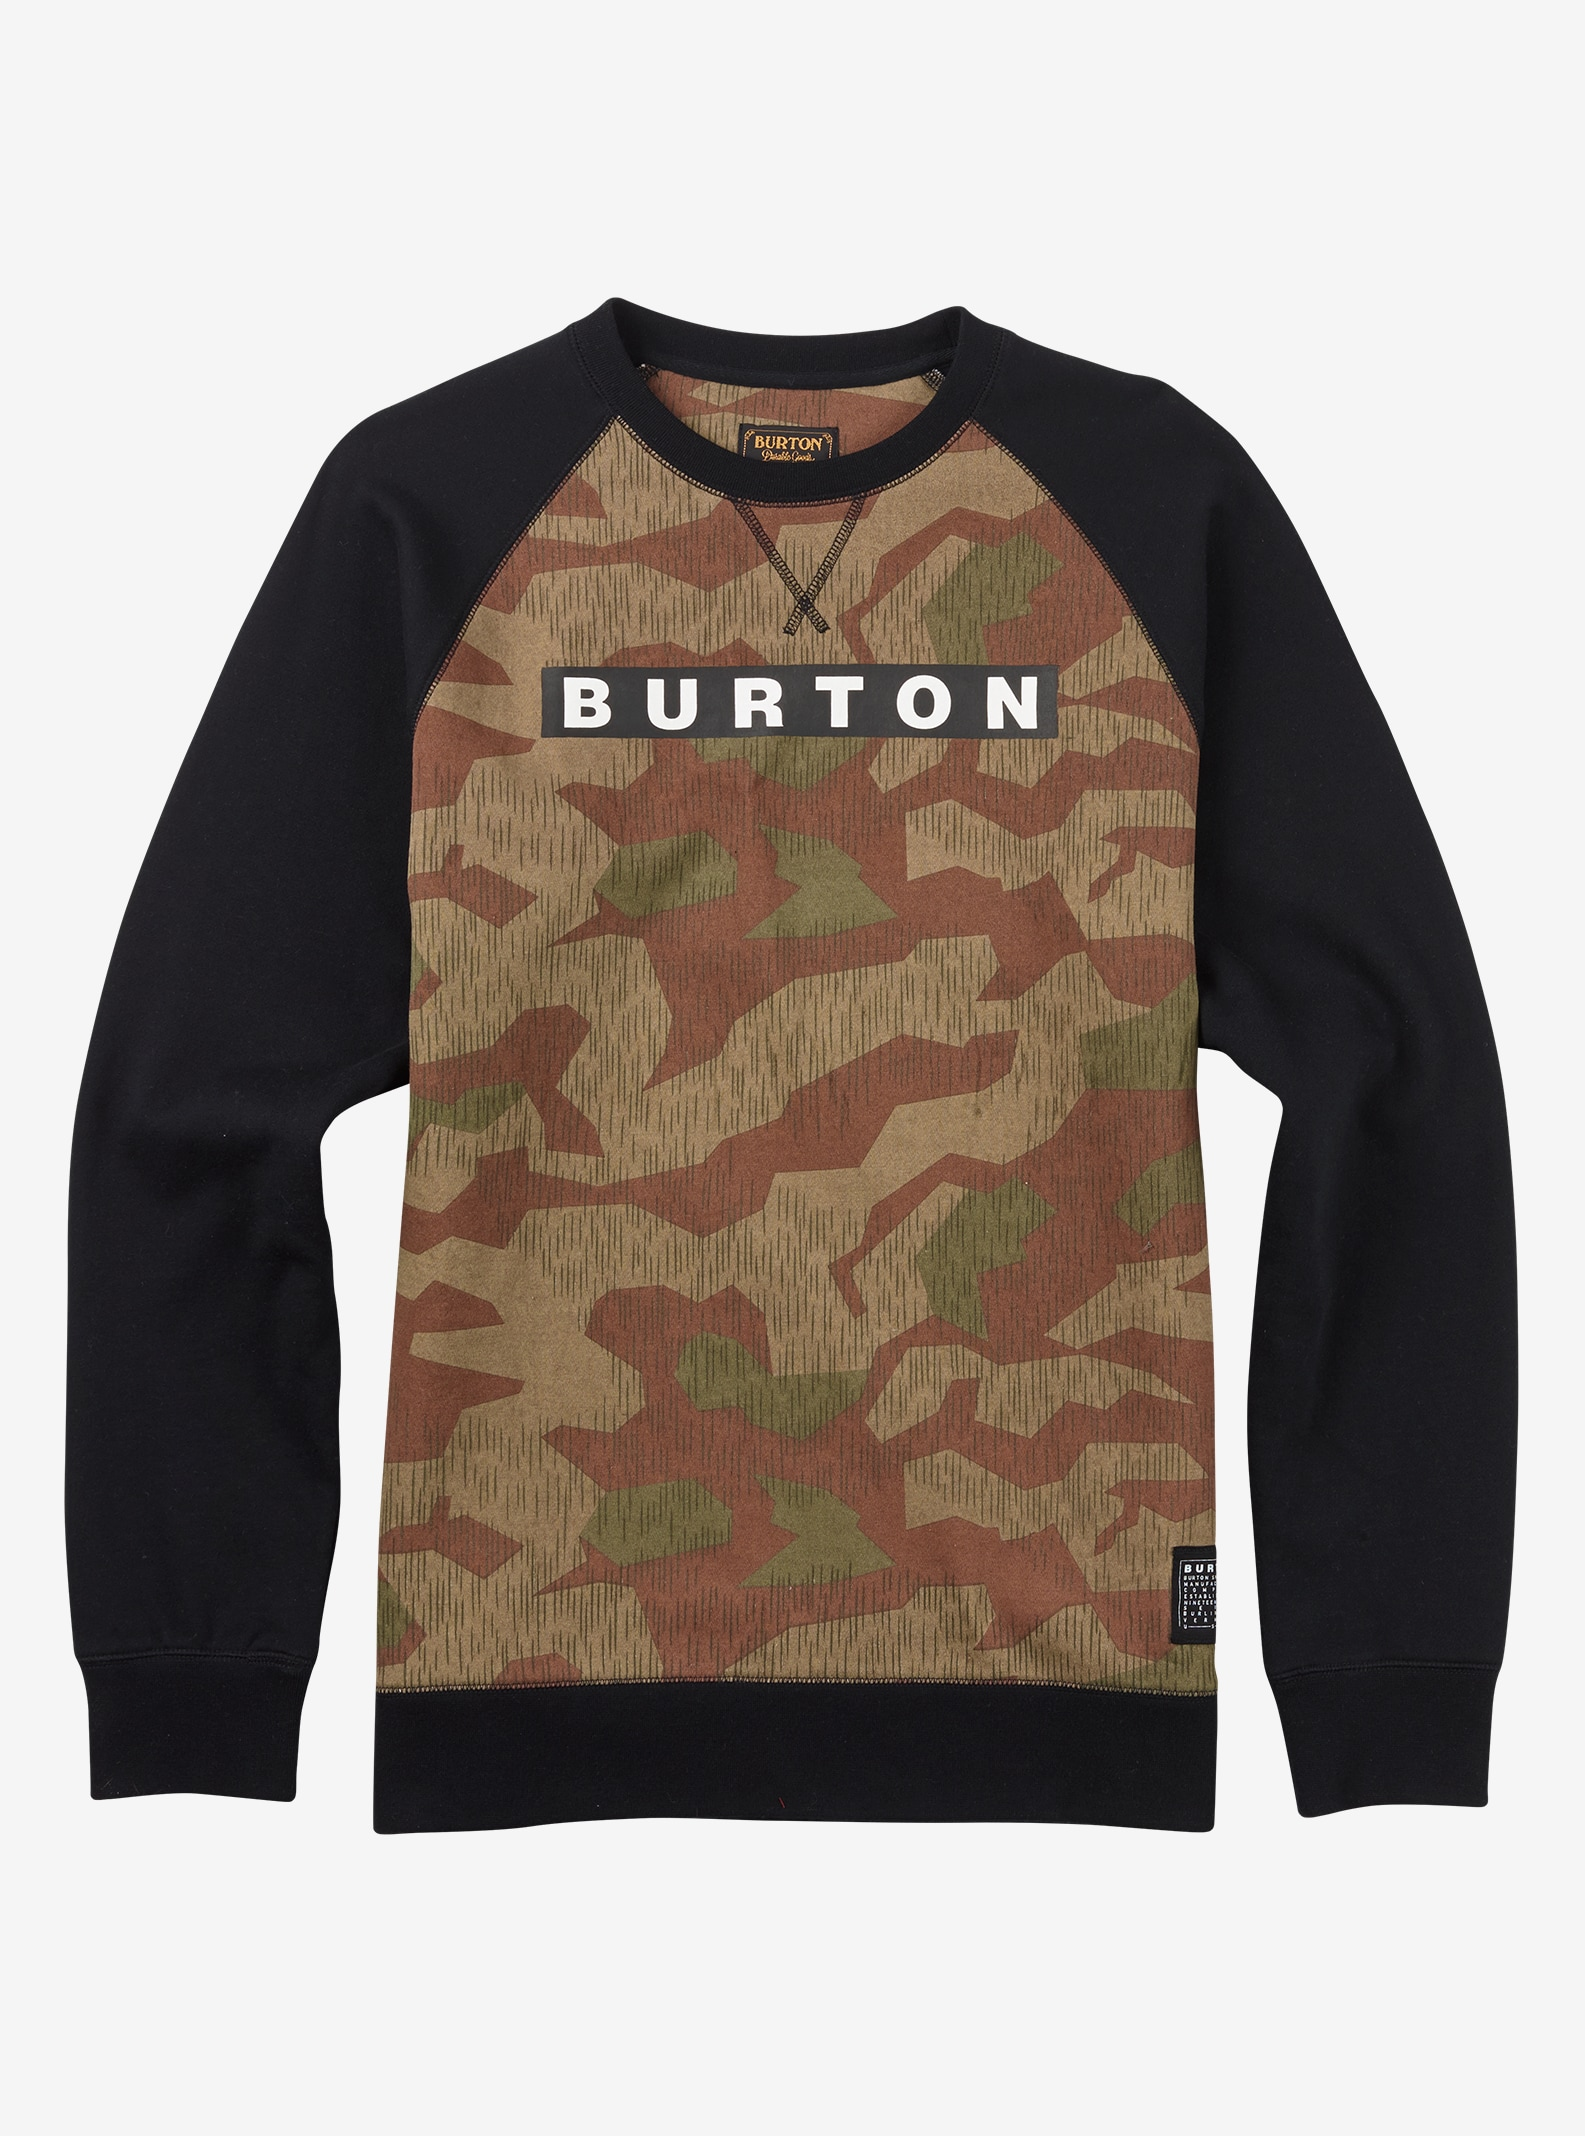 Burton Vault Crew shown in Splinter Camo